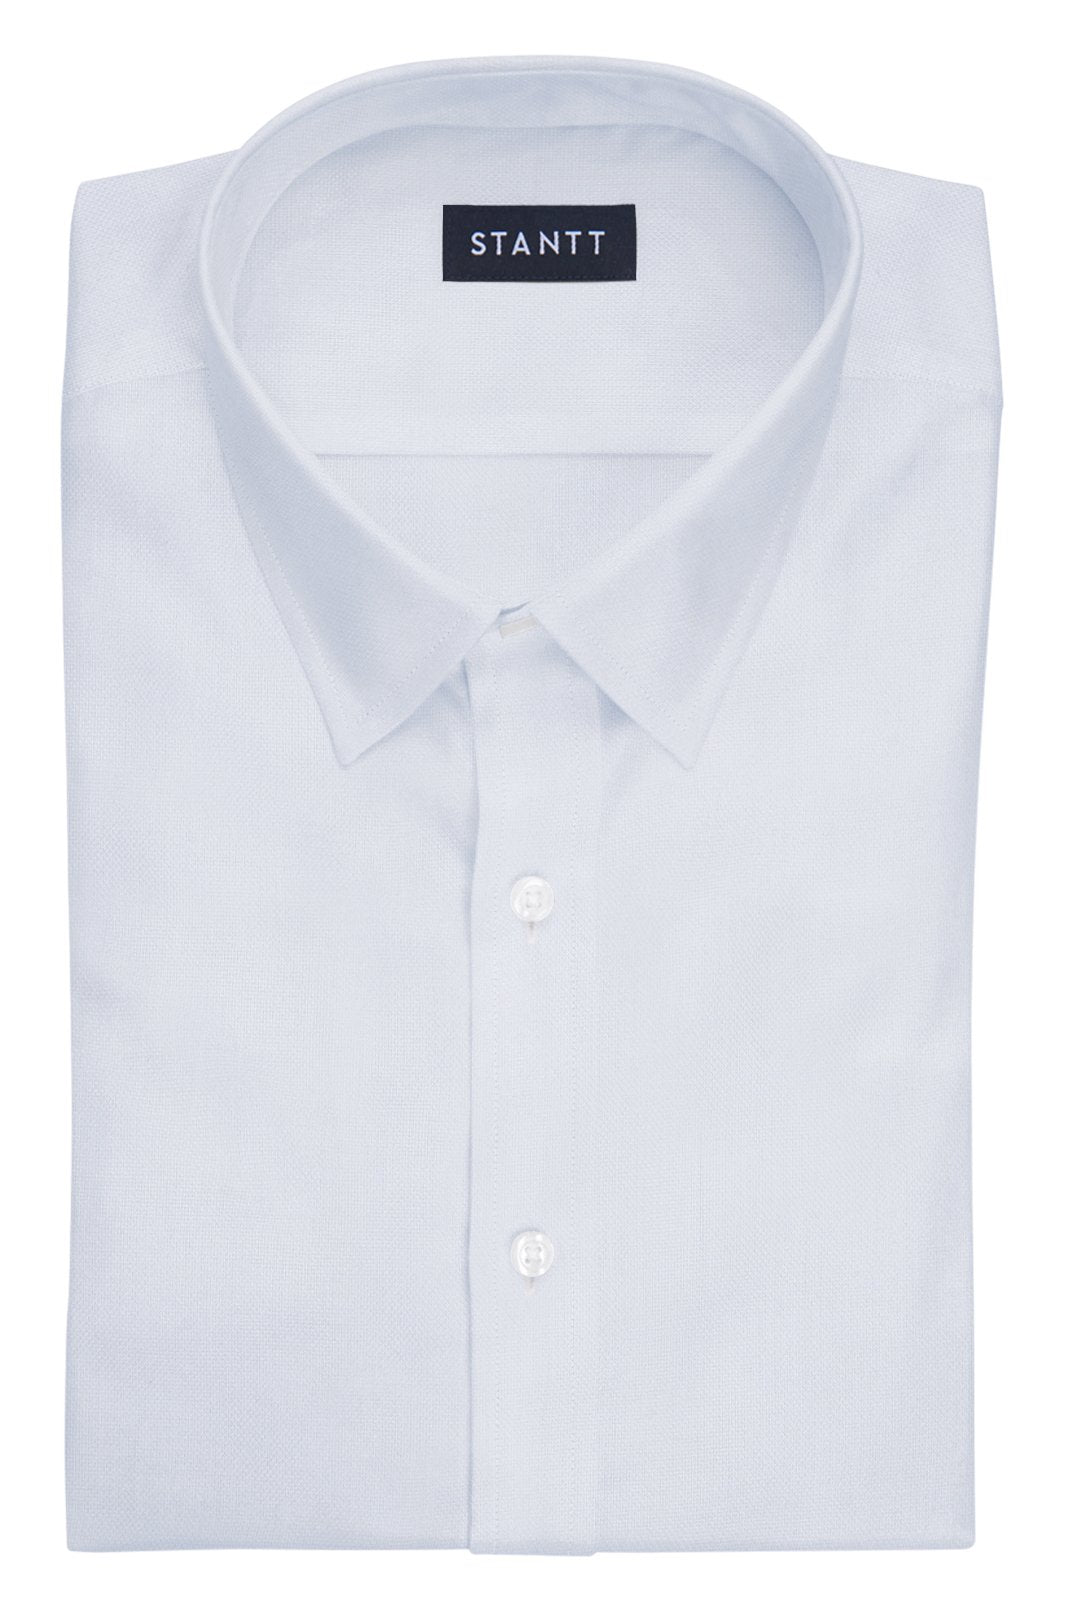 White Royal Oxford: Semi-Spread Collar, Barrel Cuff